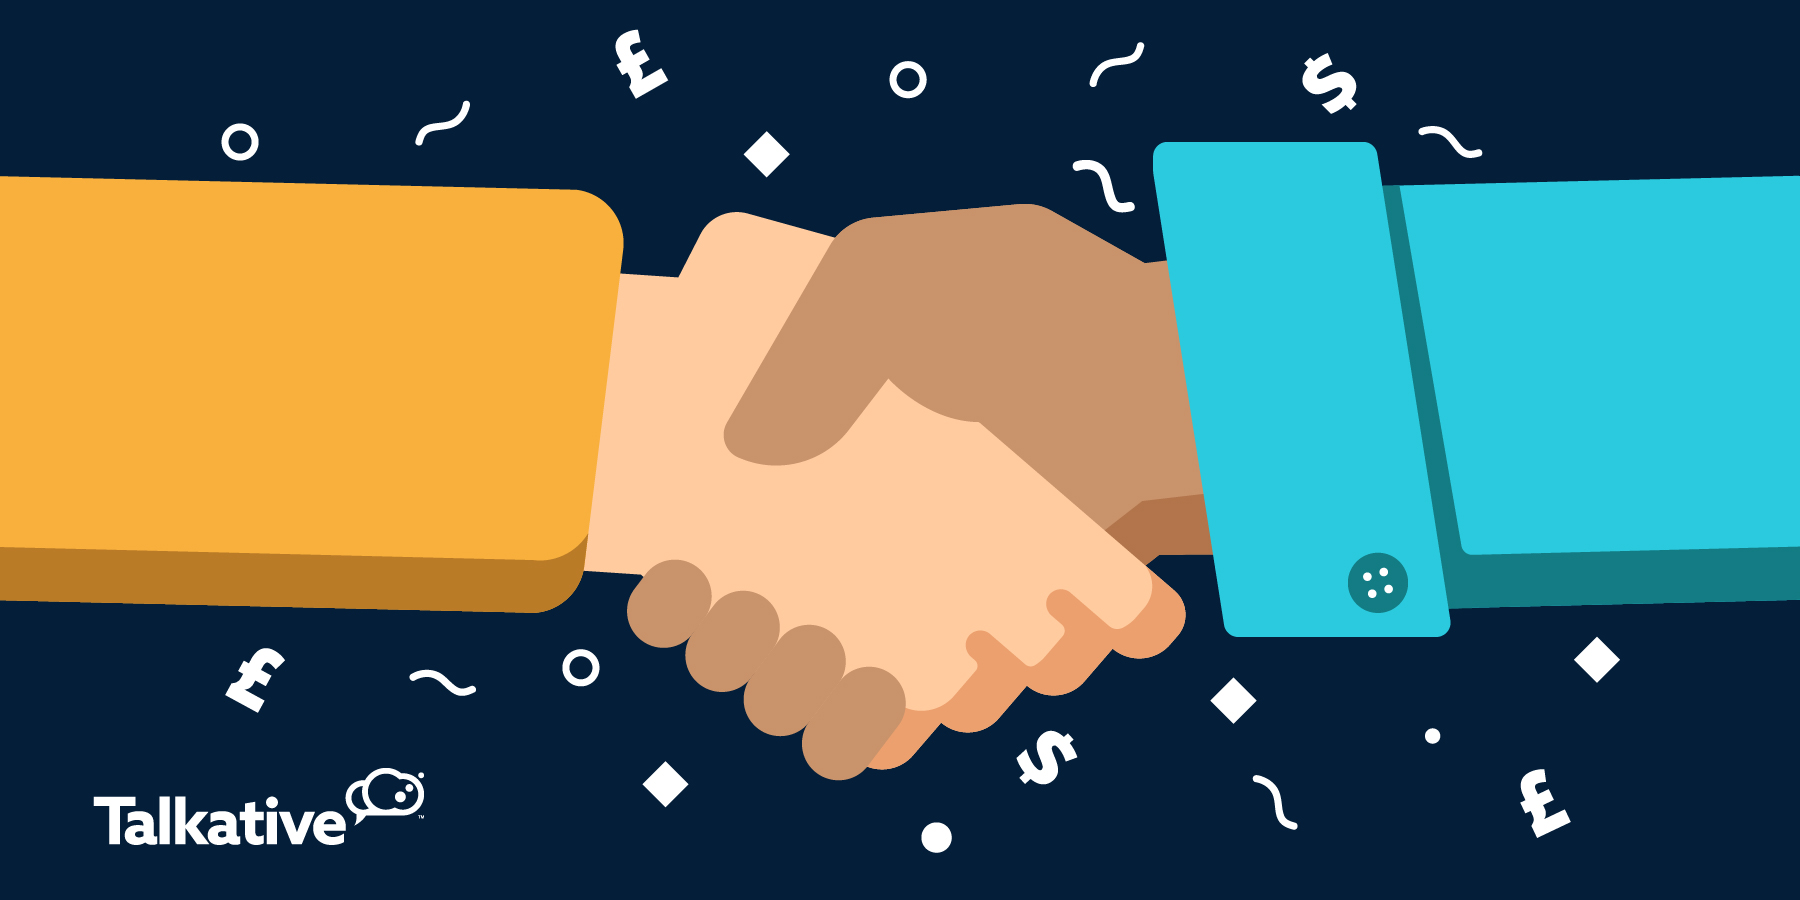 Customer and business shaking hands